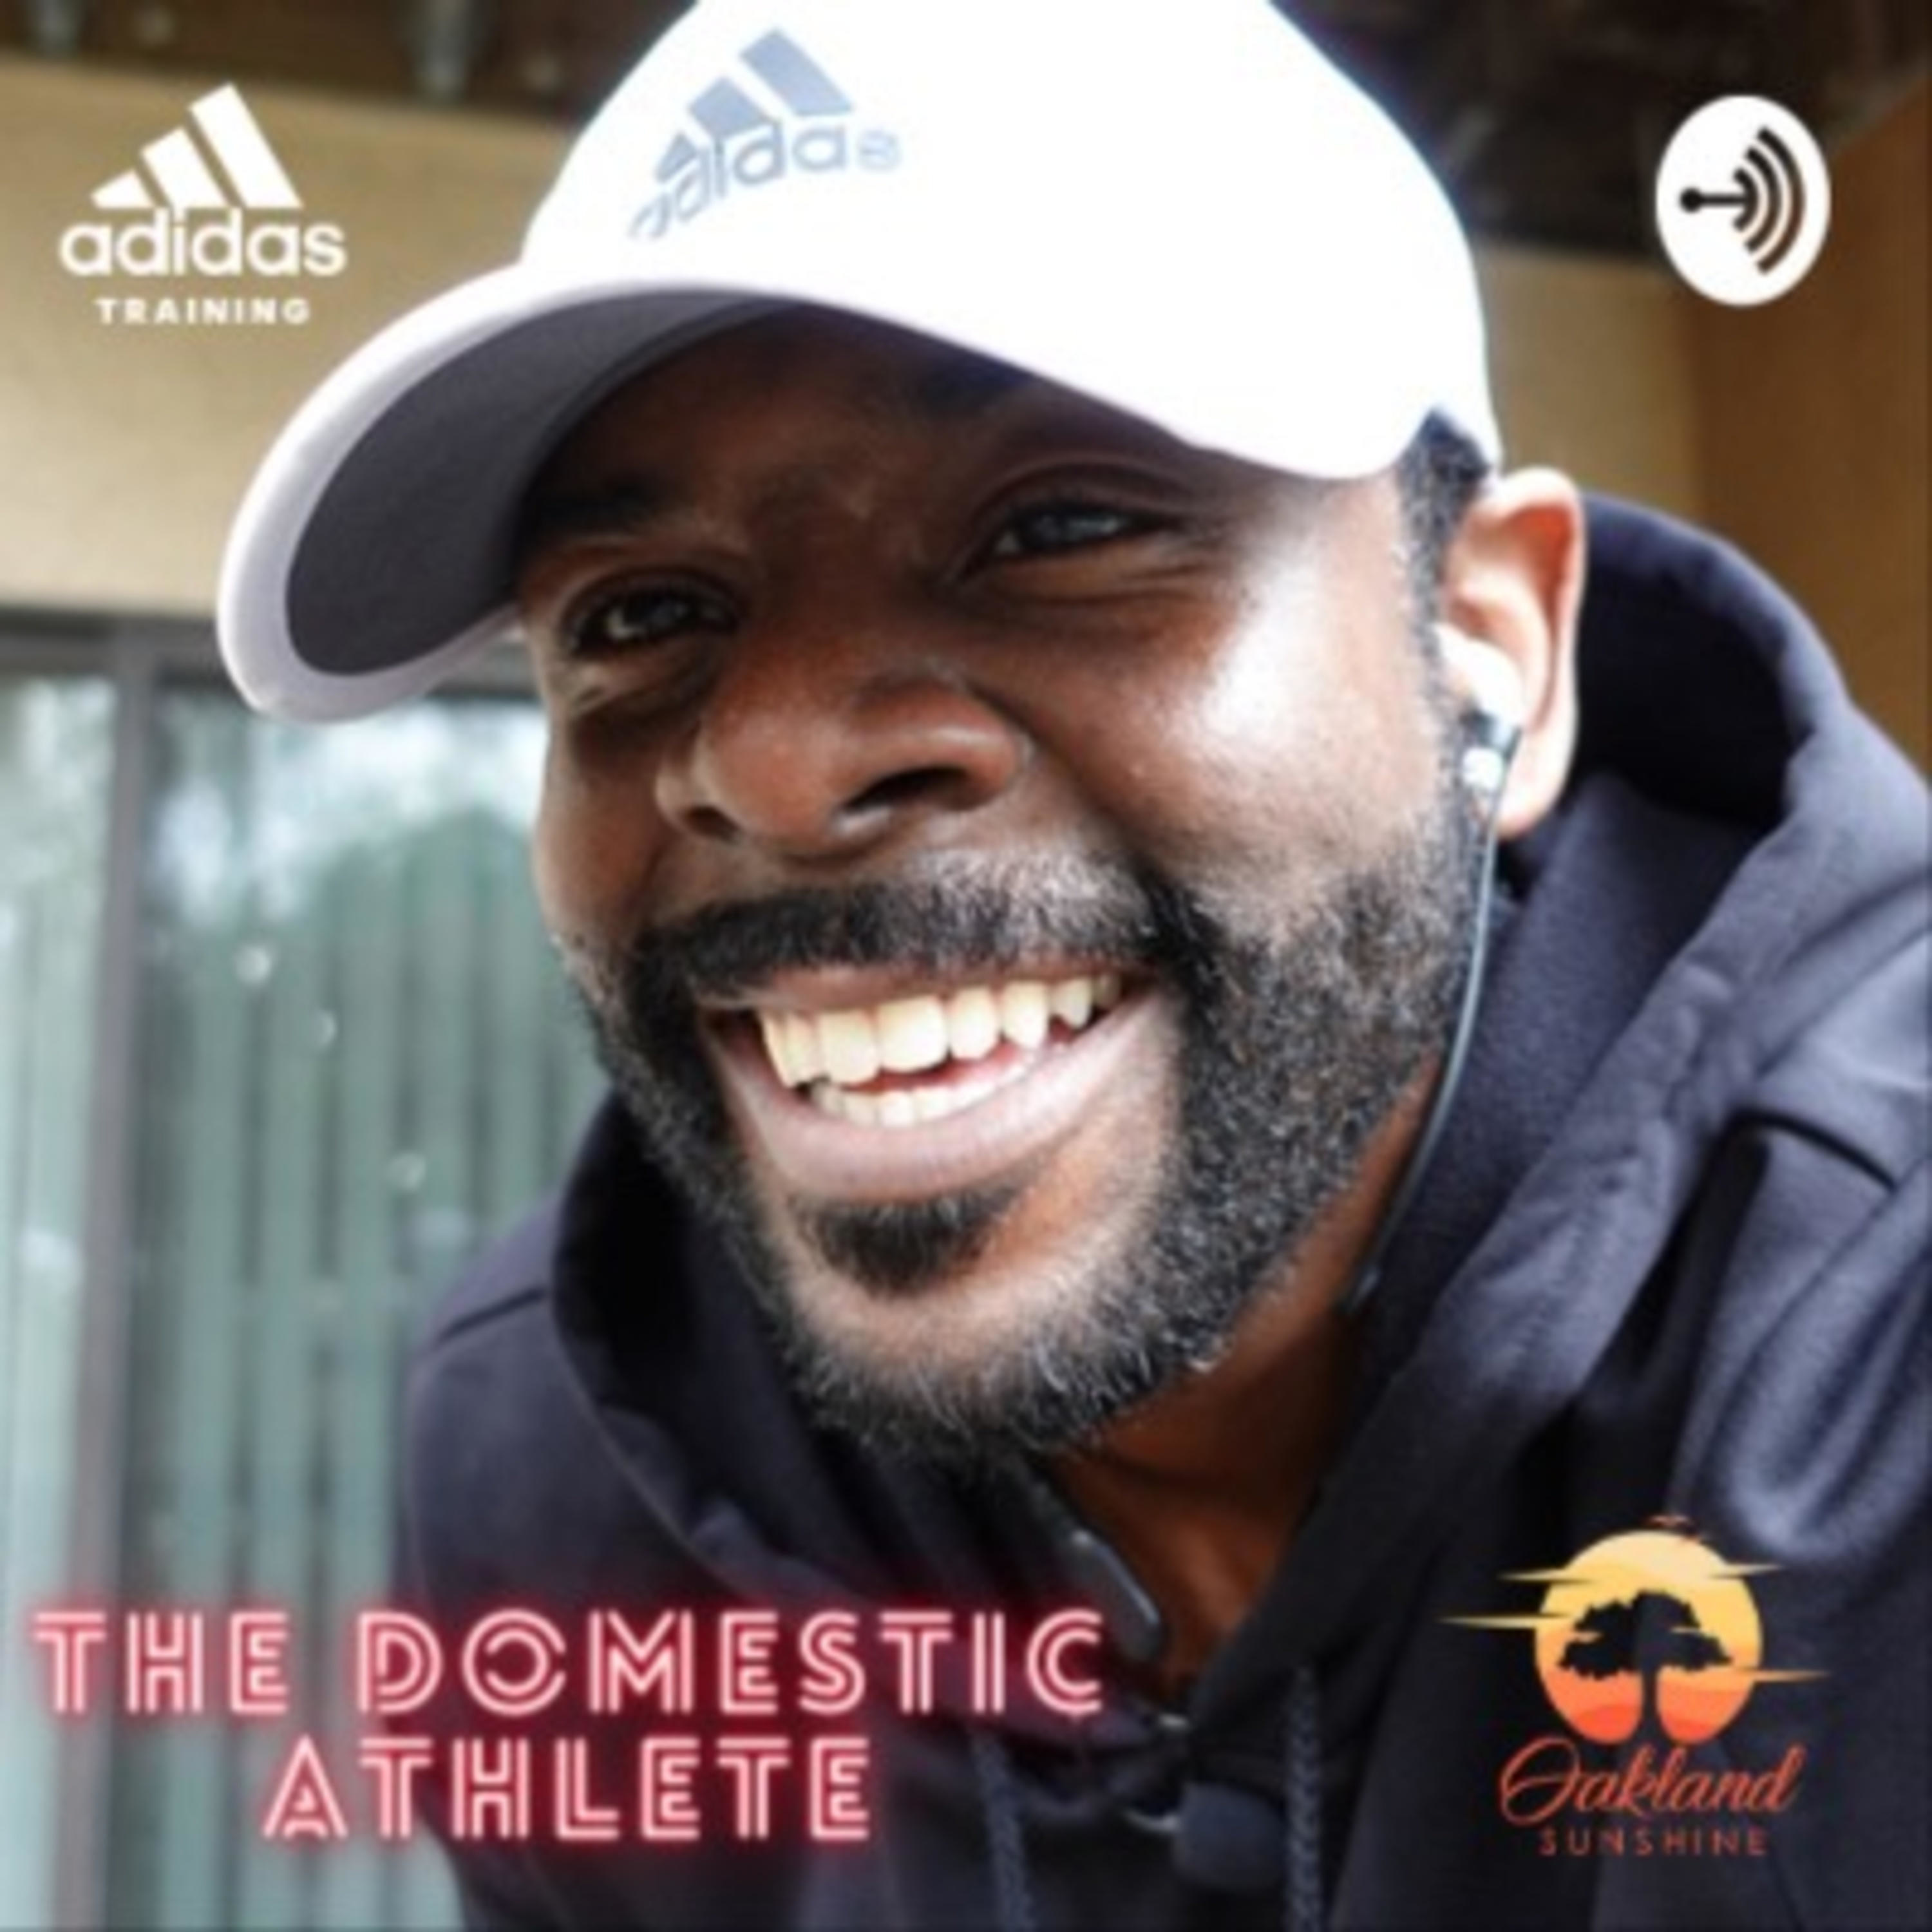 The Domestic Athlete Training Podcast